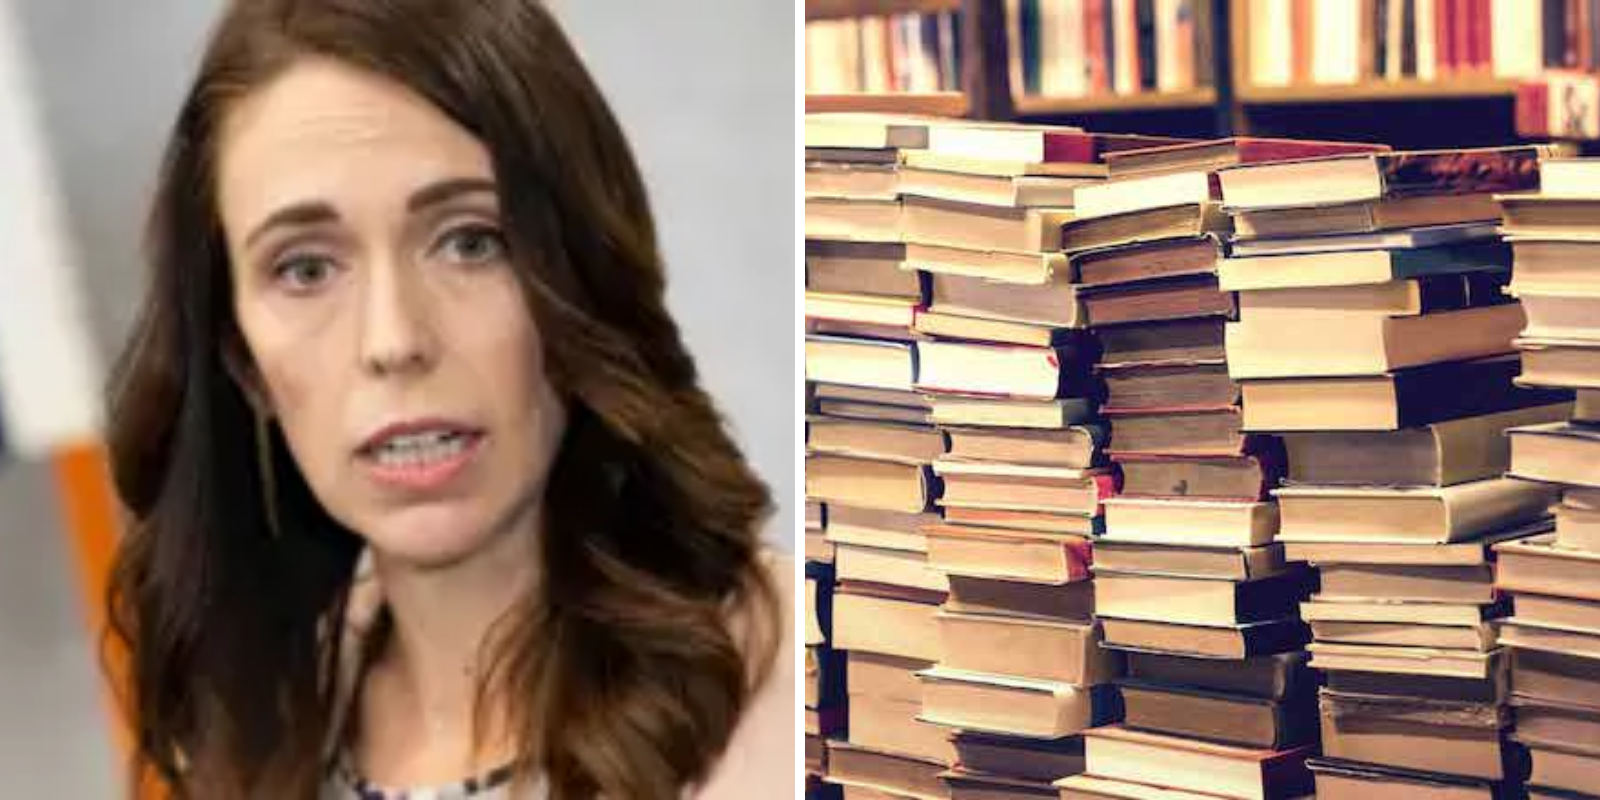 Under the onerous orders of Jacinda Ardern, New Zealand has banned the sale of books, deeming them non-essential items.